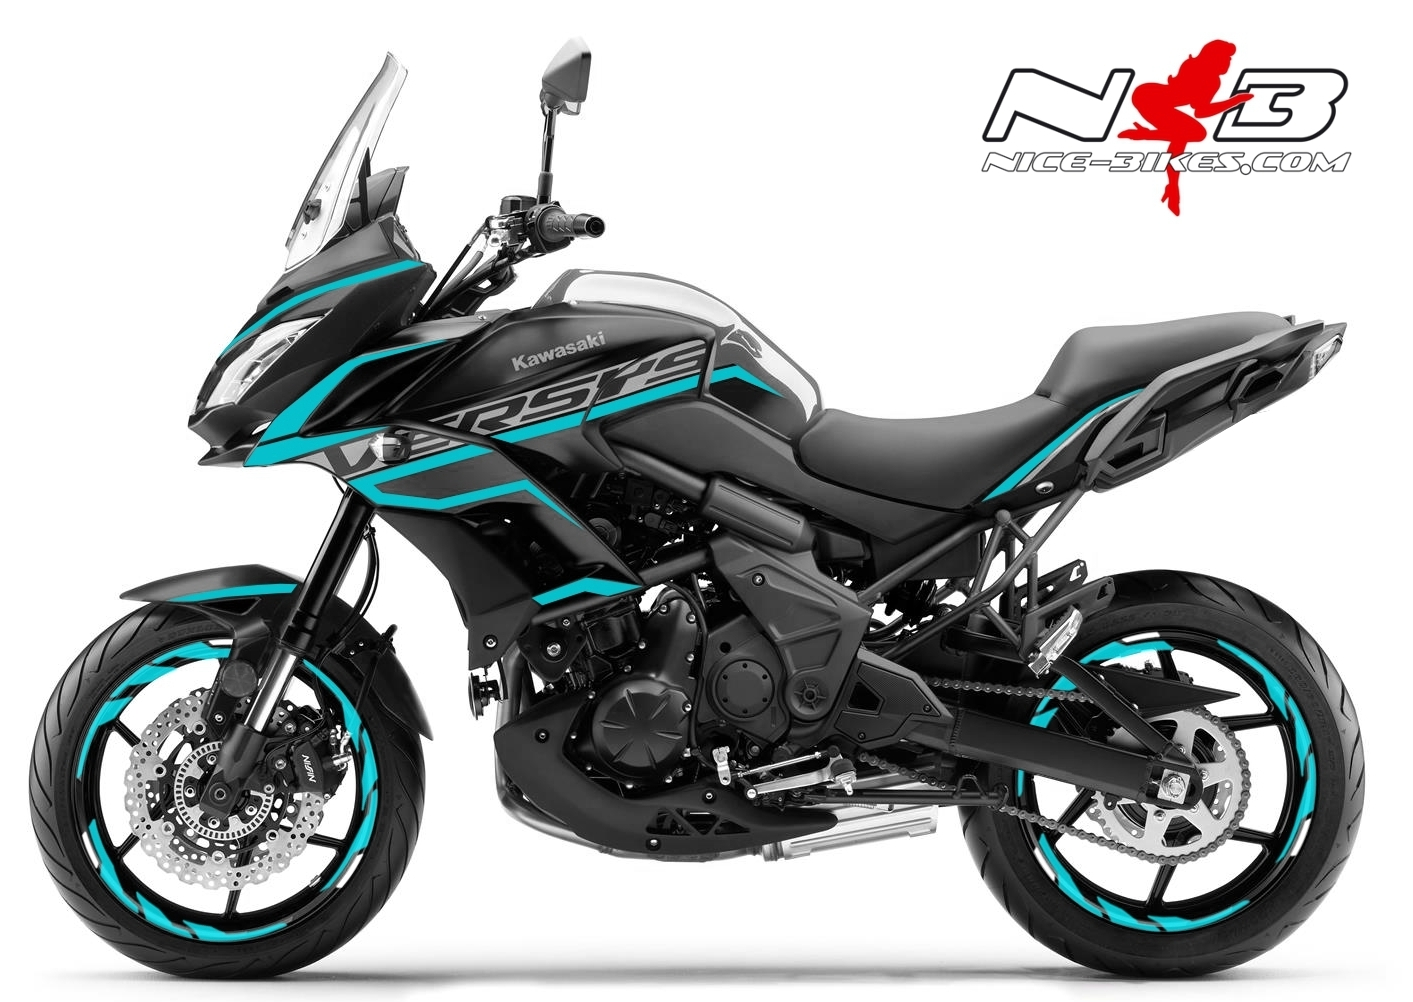 Foliendesign Kawasaki Versys 650 Bj. 2020 Light Blue